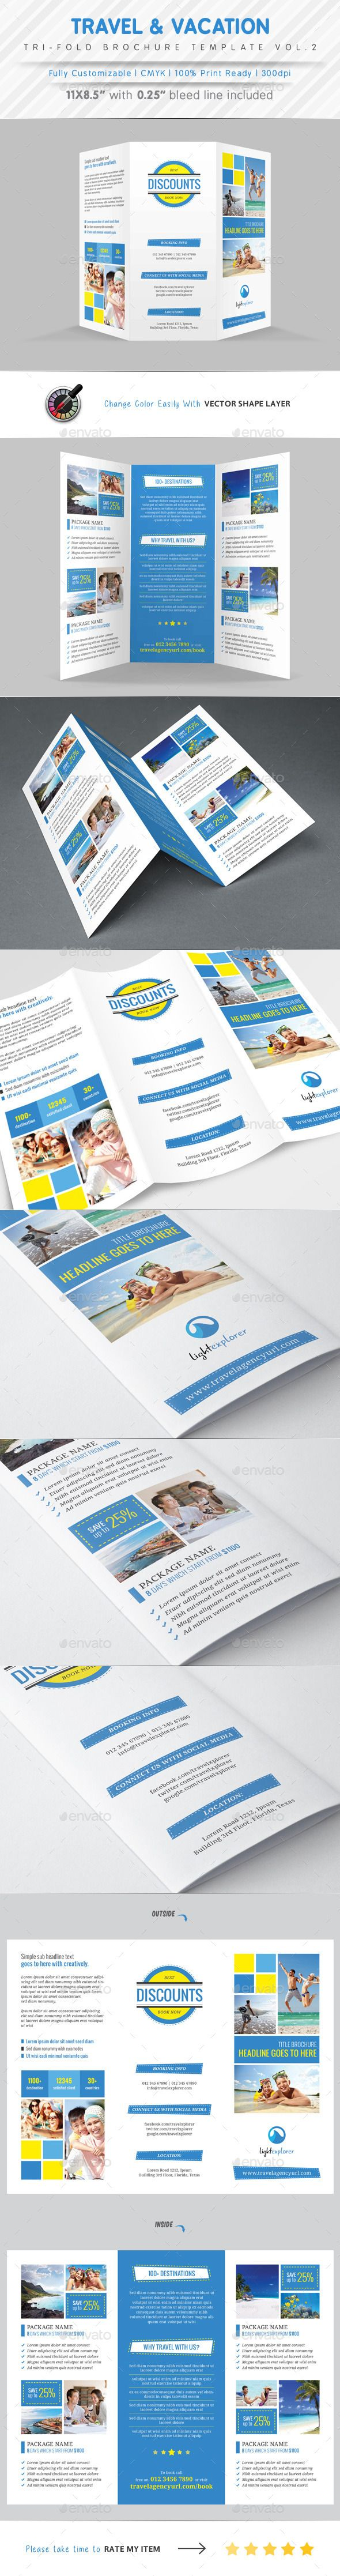 Amazing 1.5 Inch Hexagon Template Tiny 101 Modern Resume Samples Shaped 1500 Claim Form Template 16 Birthday Invitation Templates Young 18 Year Old Resume Sample Yellow2 Page Resumes Samples 25  Best Ideas About Travel Brochure Template On Pinterest ..